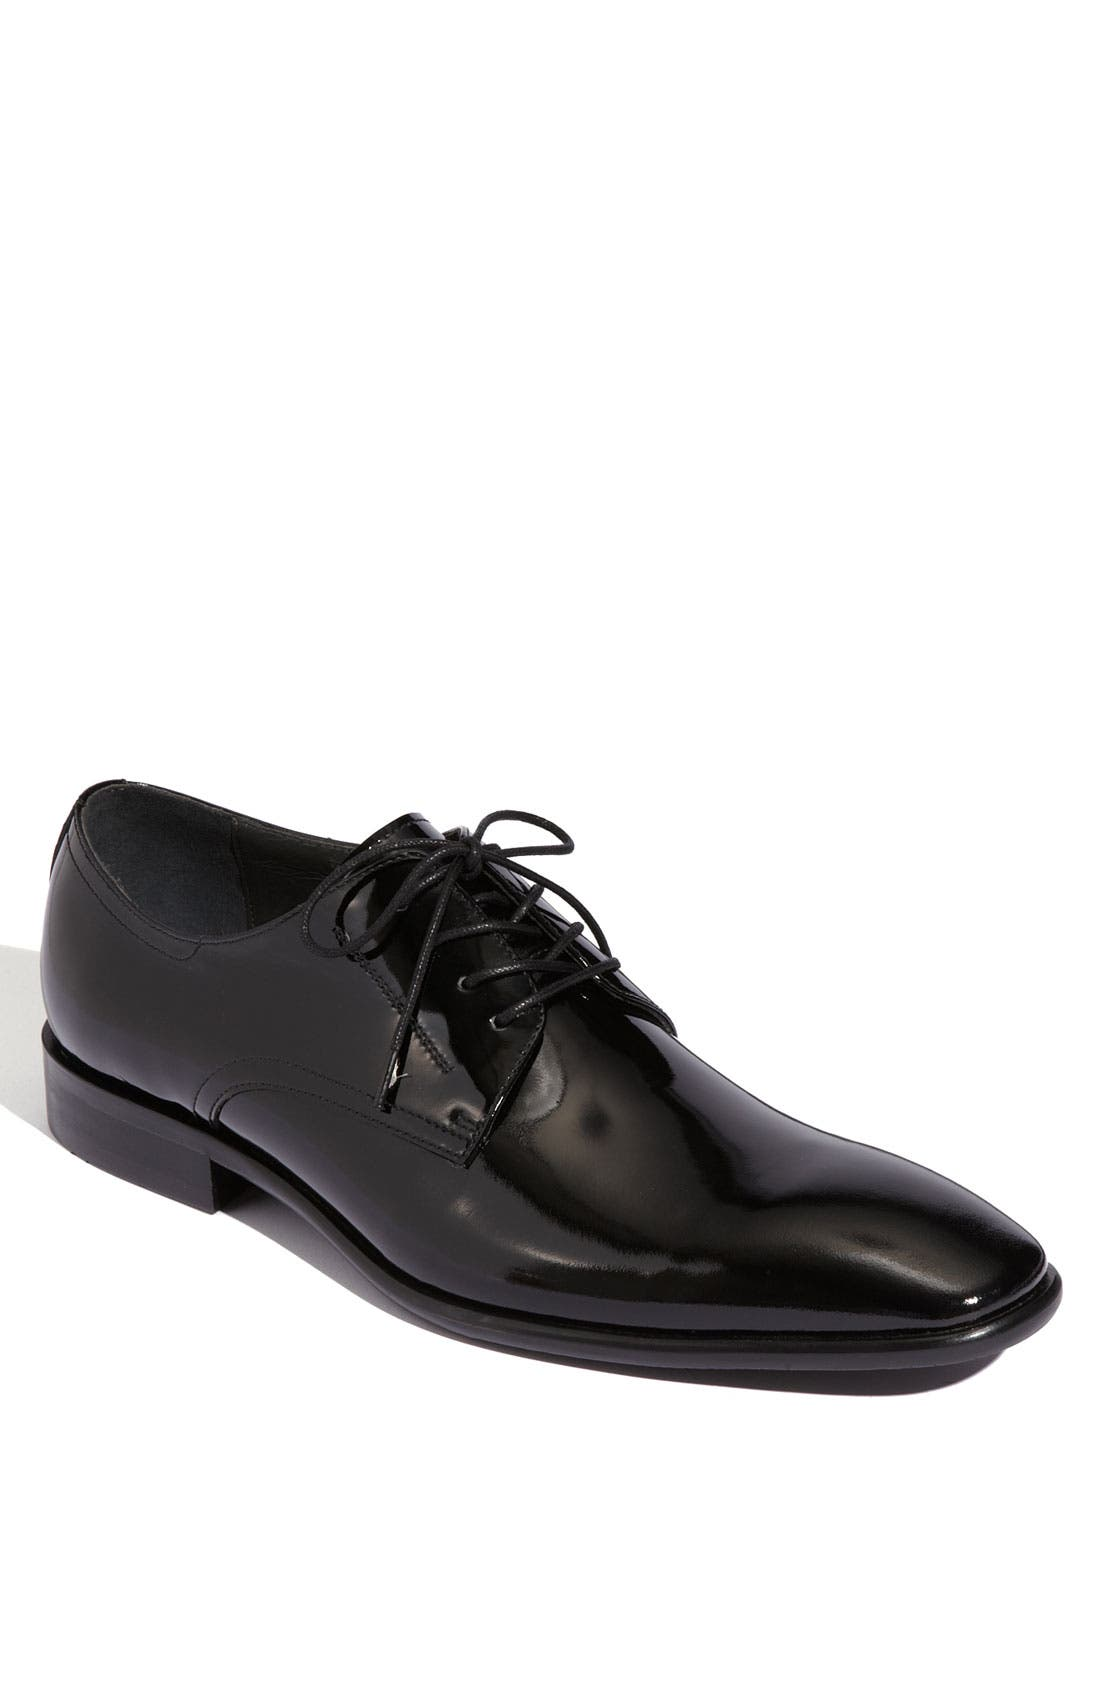 Main Image - Calibrate 'Oscar' Patent Leather Dress Shoe (Men)